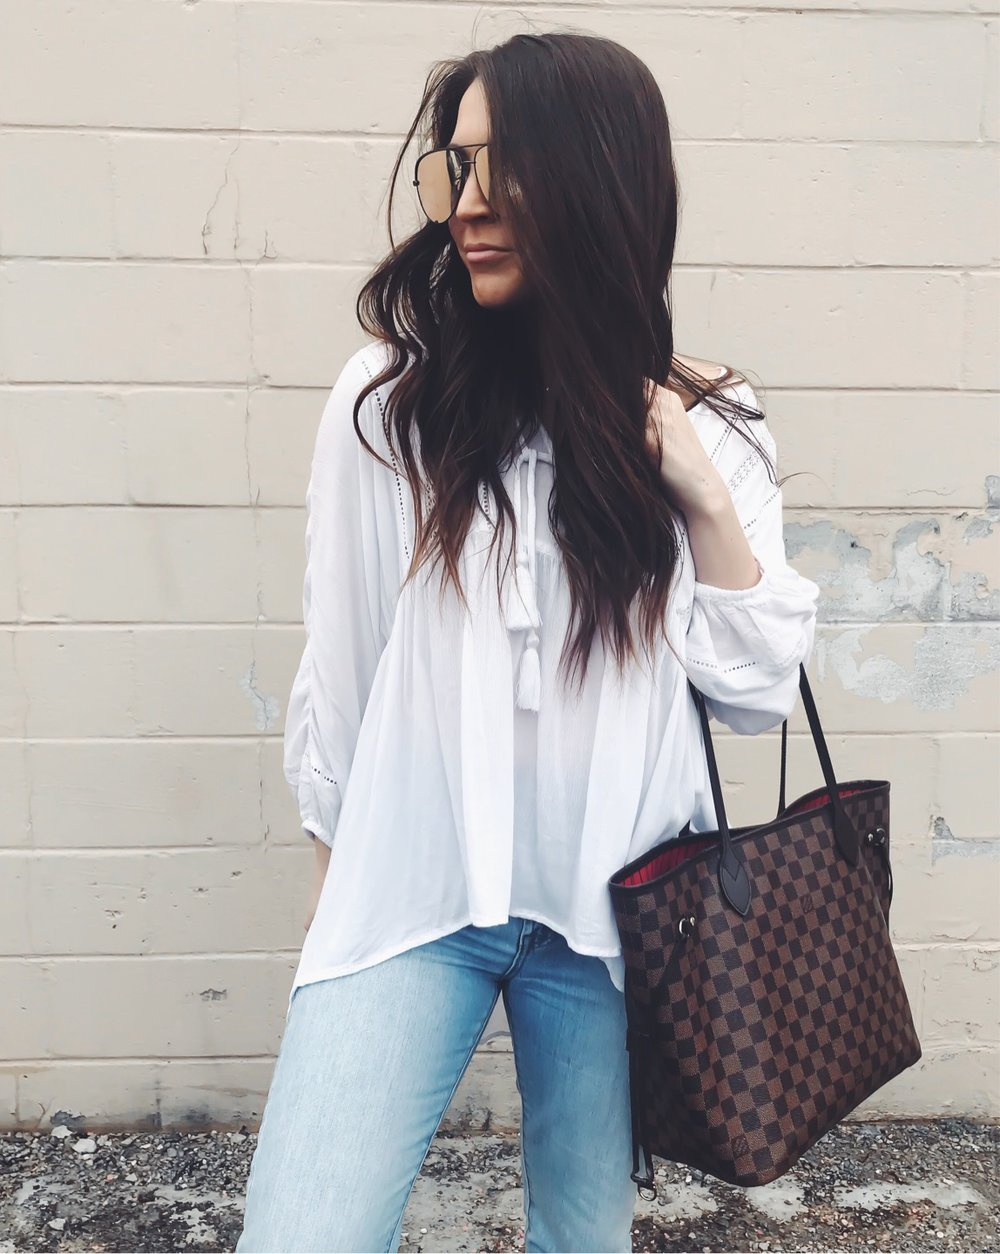 Instagram Round Up | Pine Barren Beauty | spring outfit idea, flowy white top for summer, high waisted denim